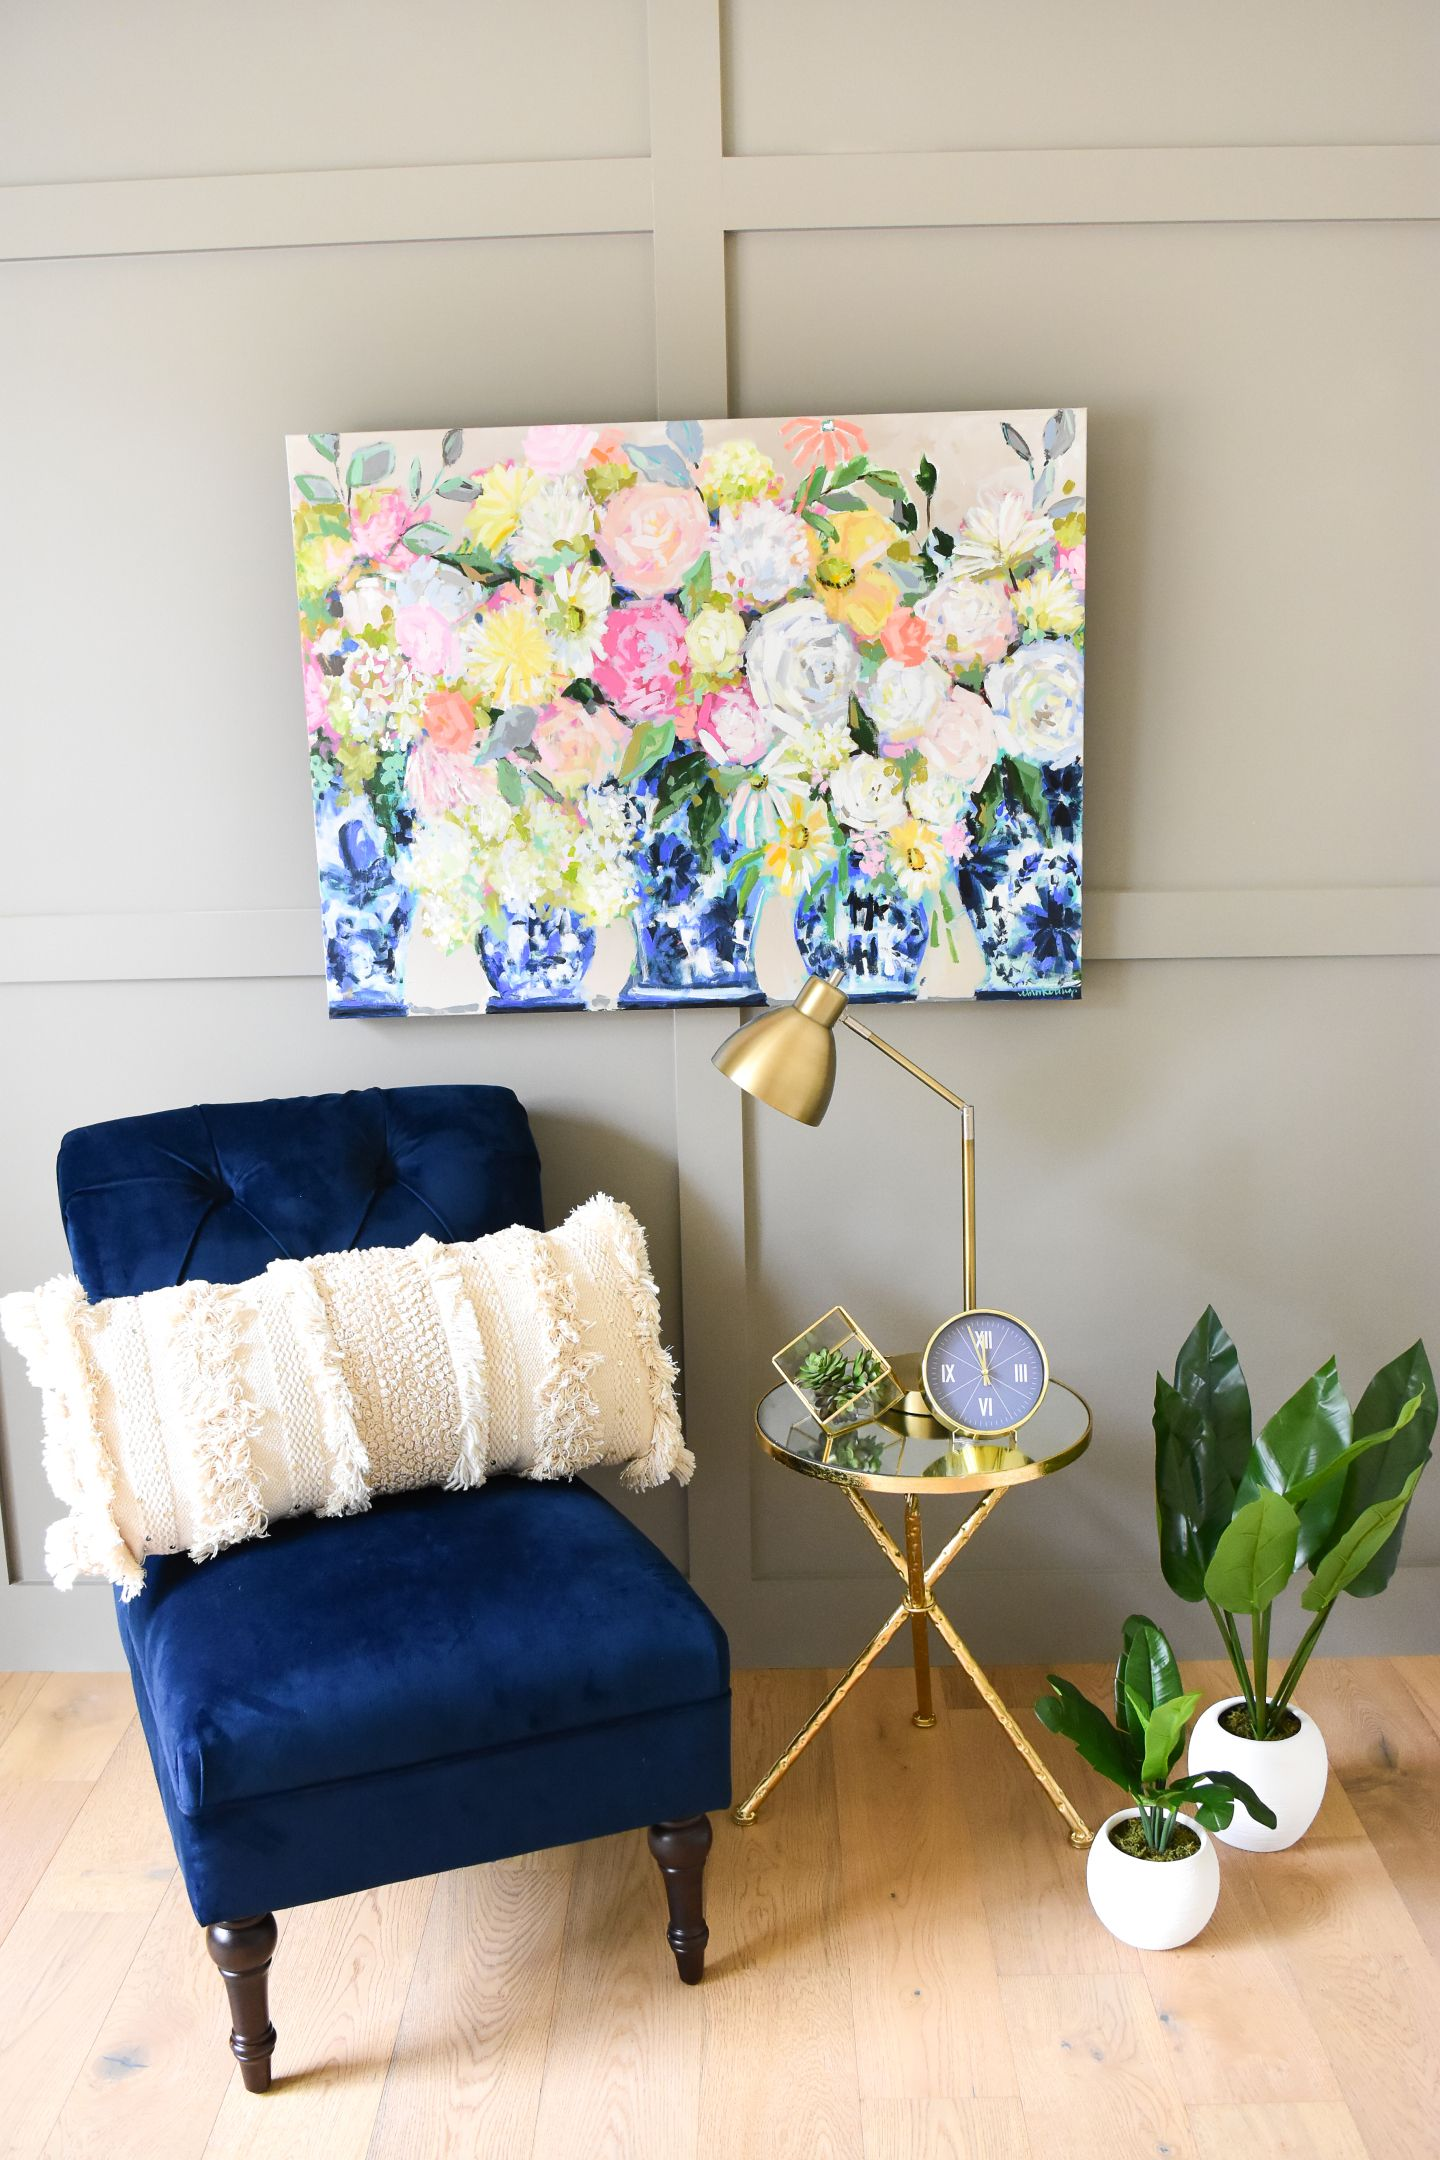 Best Bright Floral Painting In Blue And White G*Ng*R Jars With 400 x 300